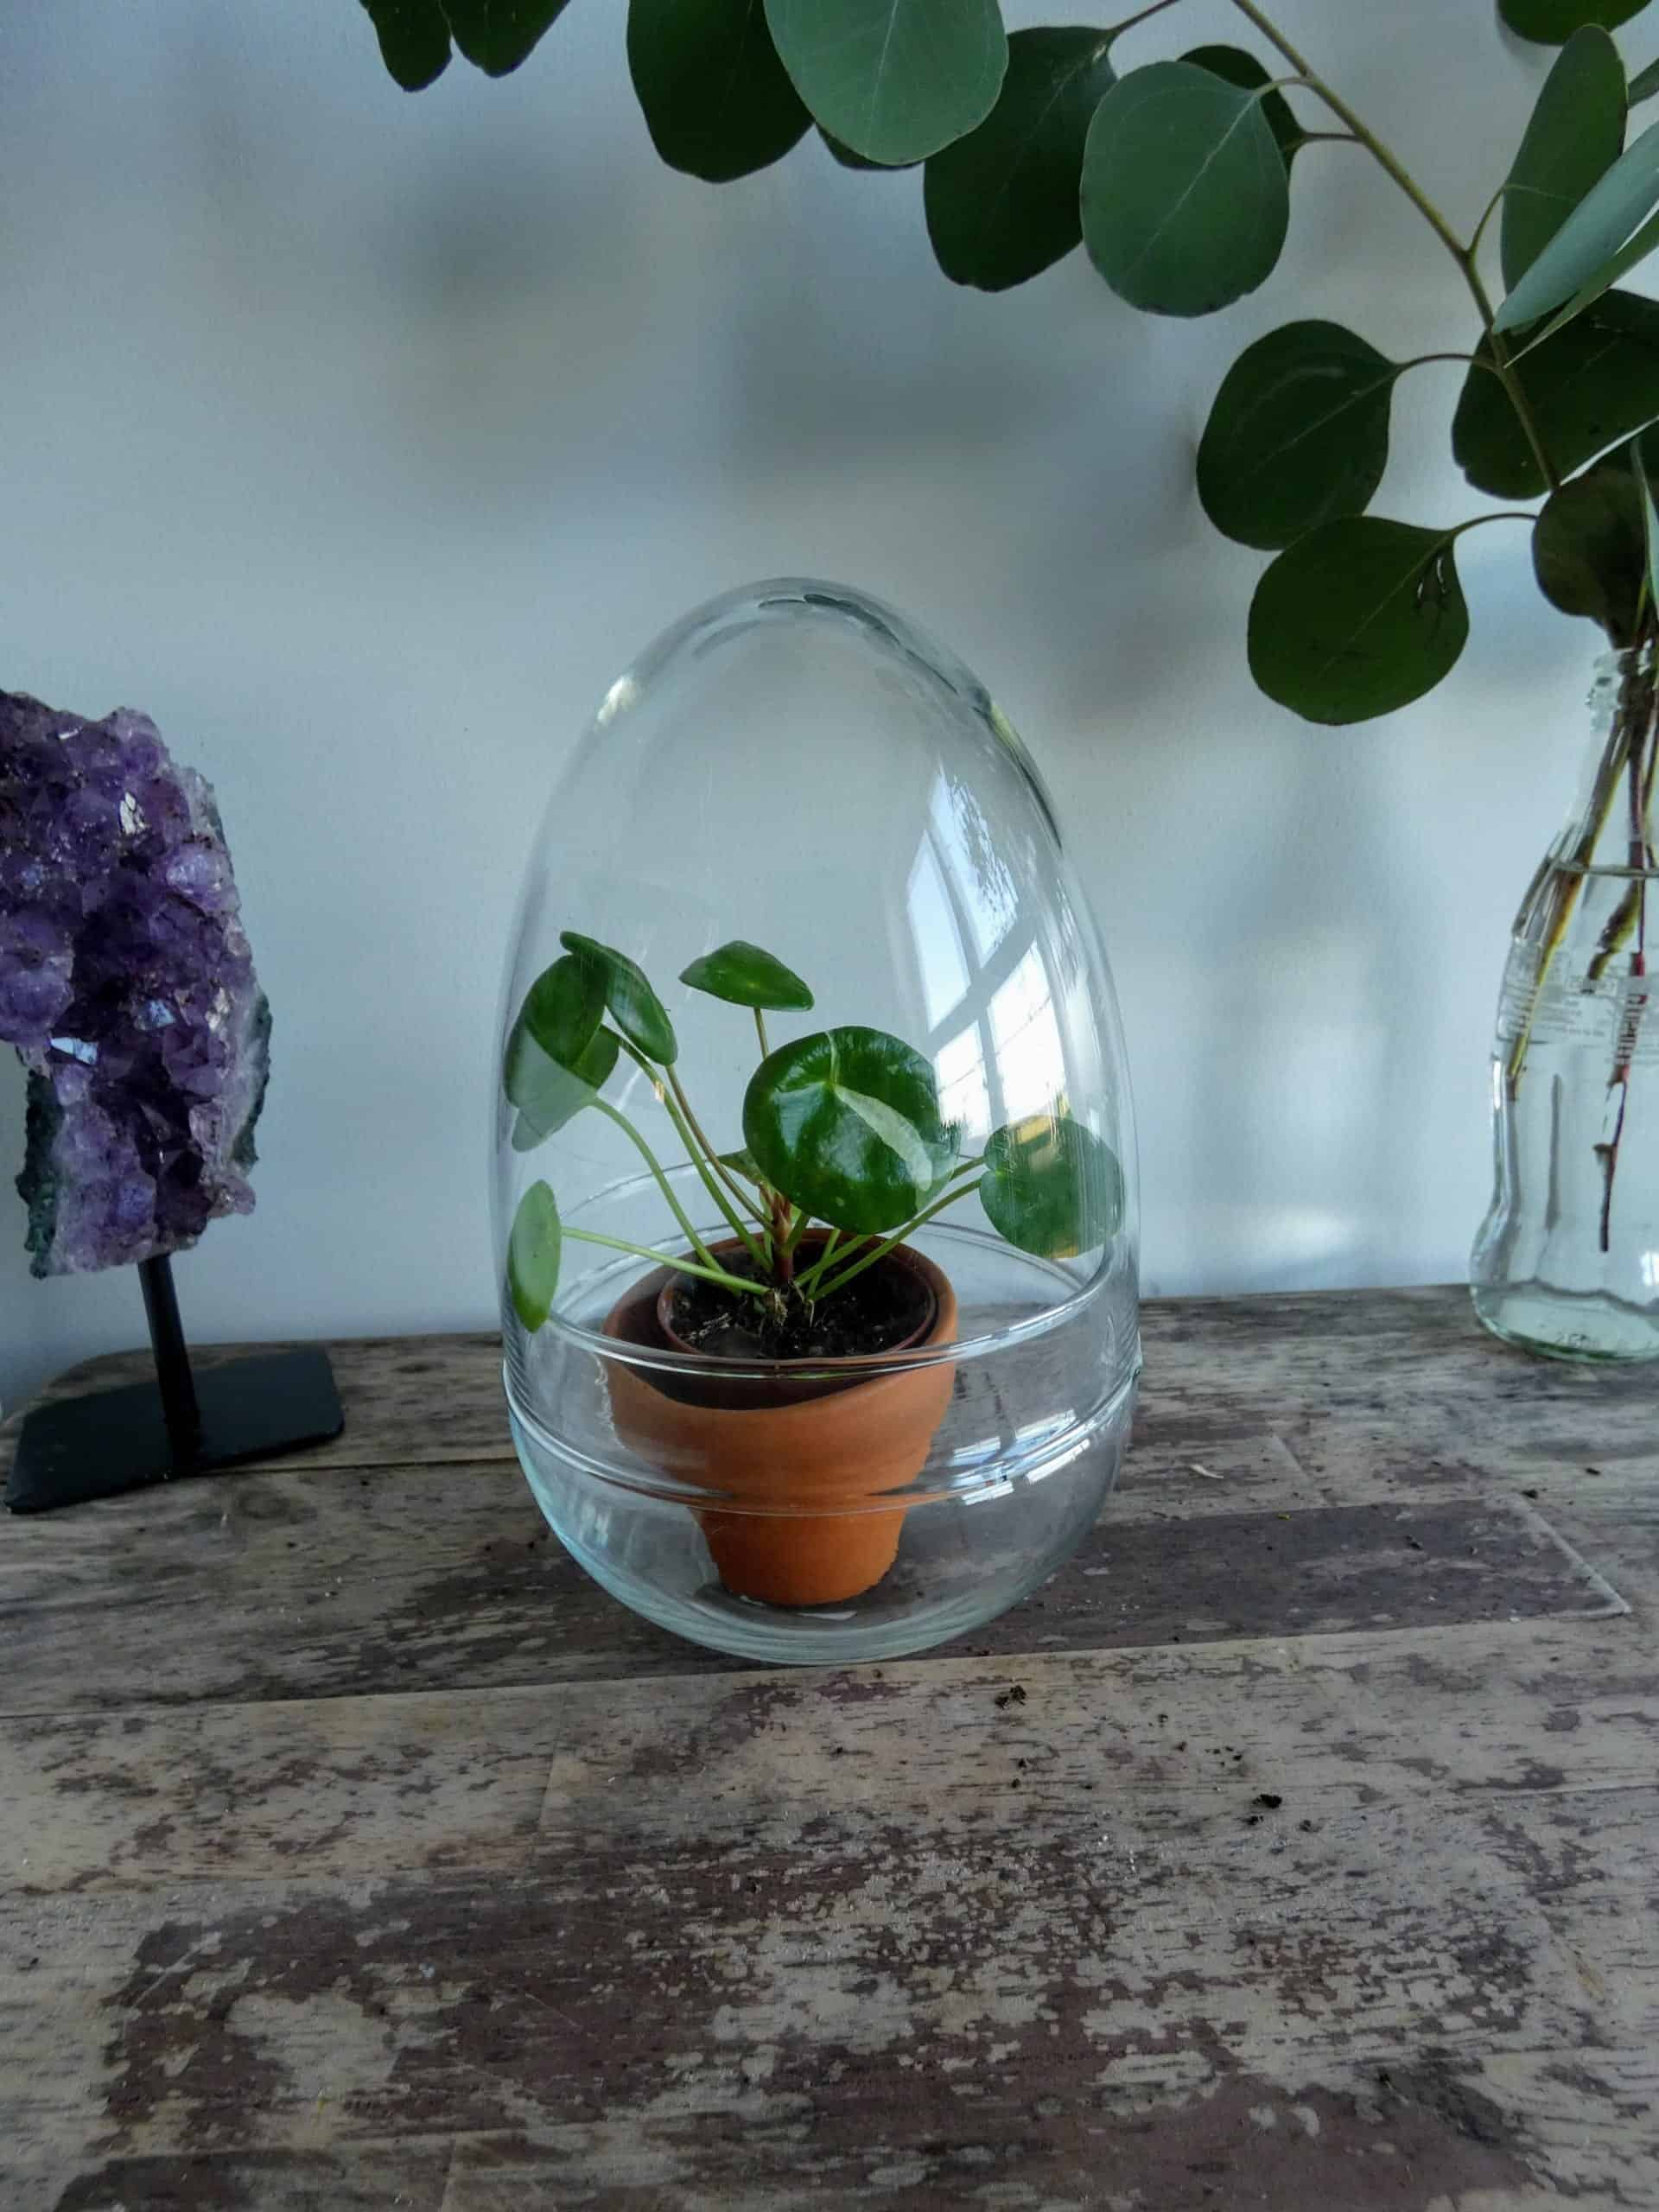 Glass Egg Cloche   Dome Jar   Growing Environment and Display